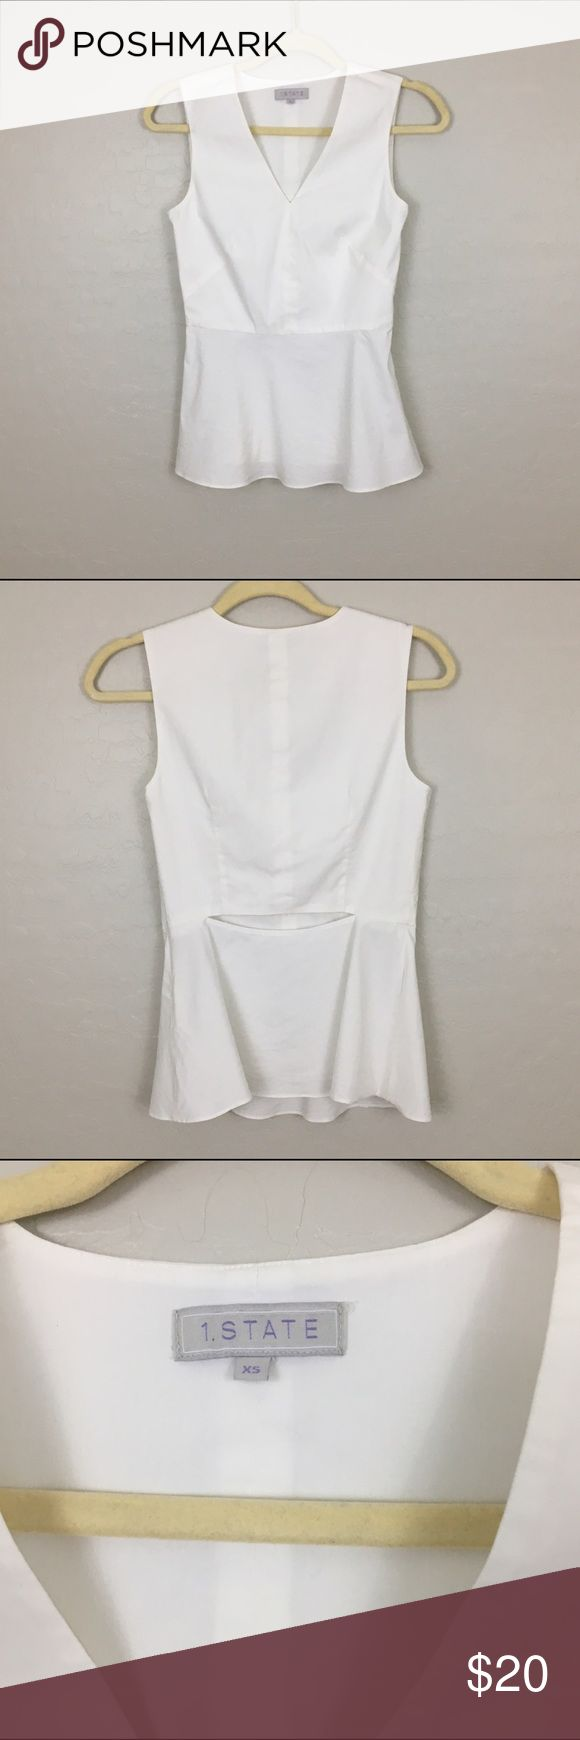 Peplum Top with Cutout Detail Classic white peplum top with great cutout back detail. EUC 1.STATE Tops